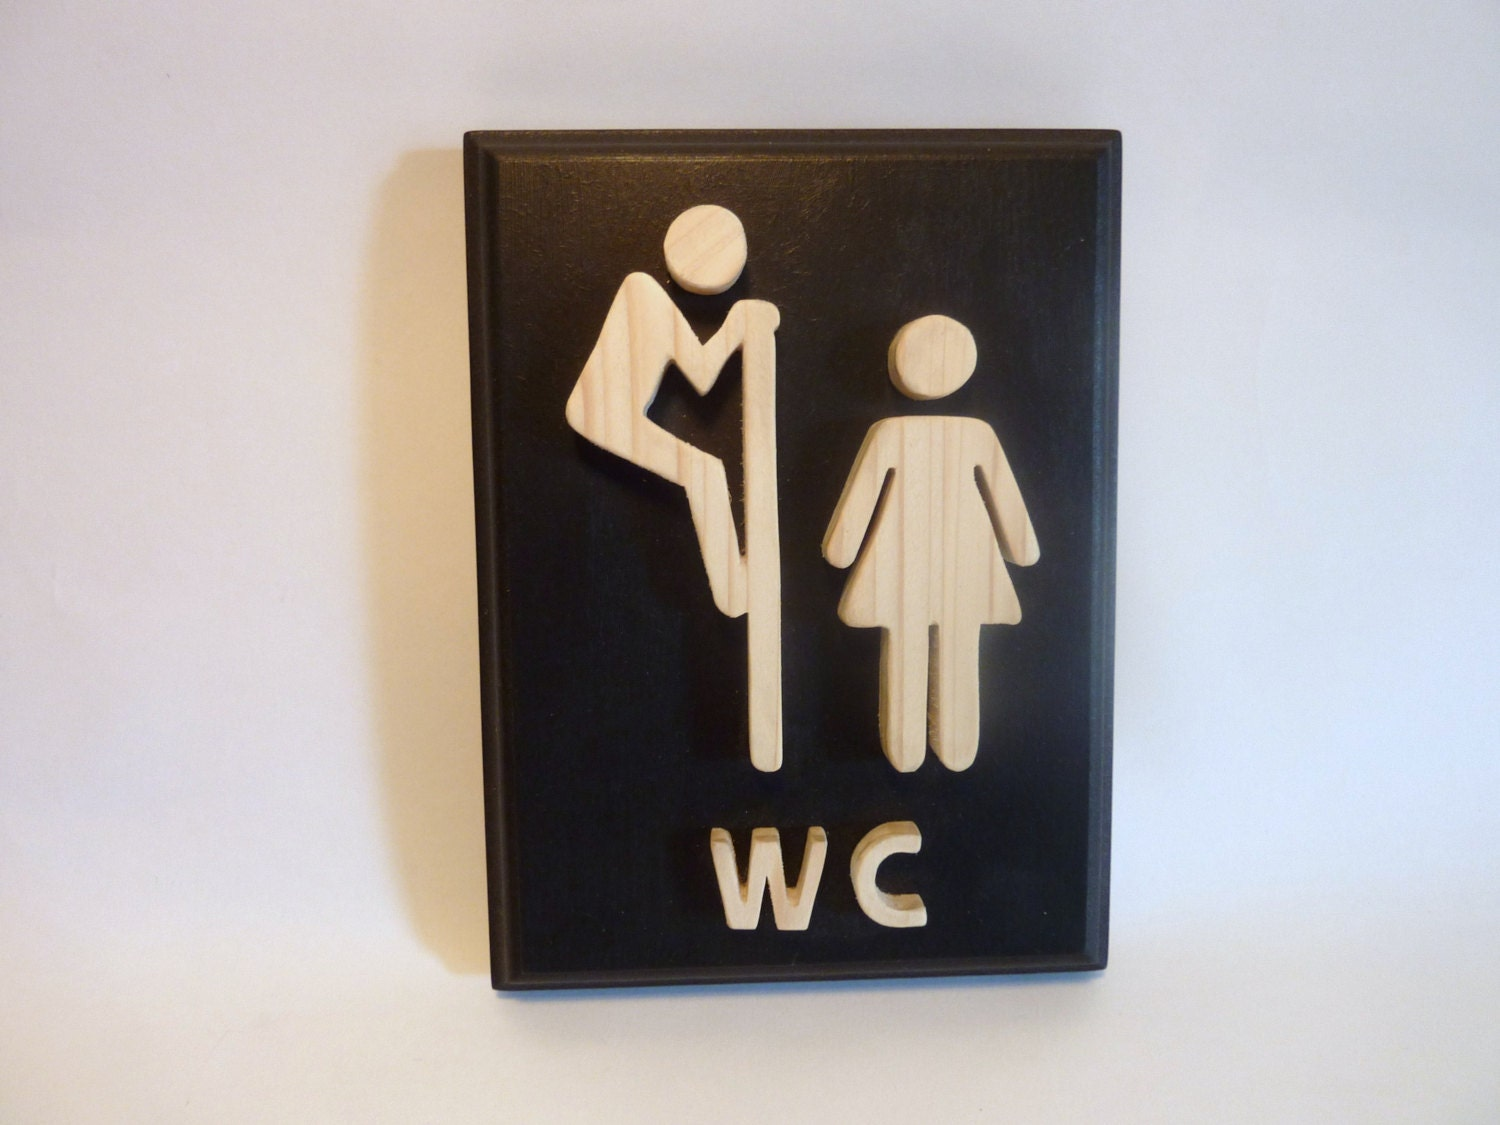 Cute Bathroom Door Signs Funny Wooden Black Bathroom